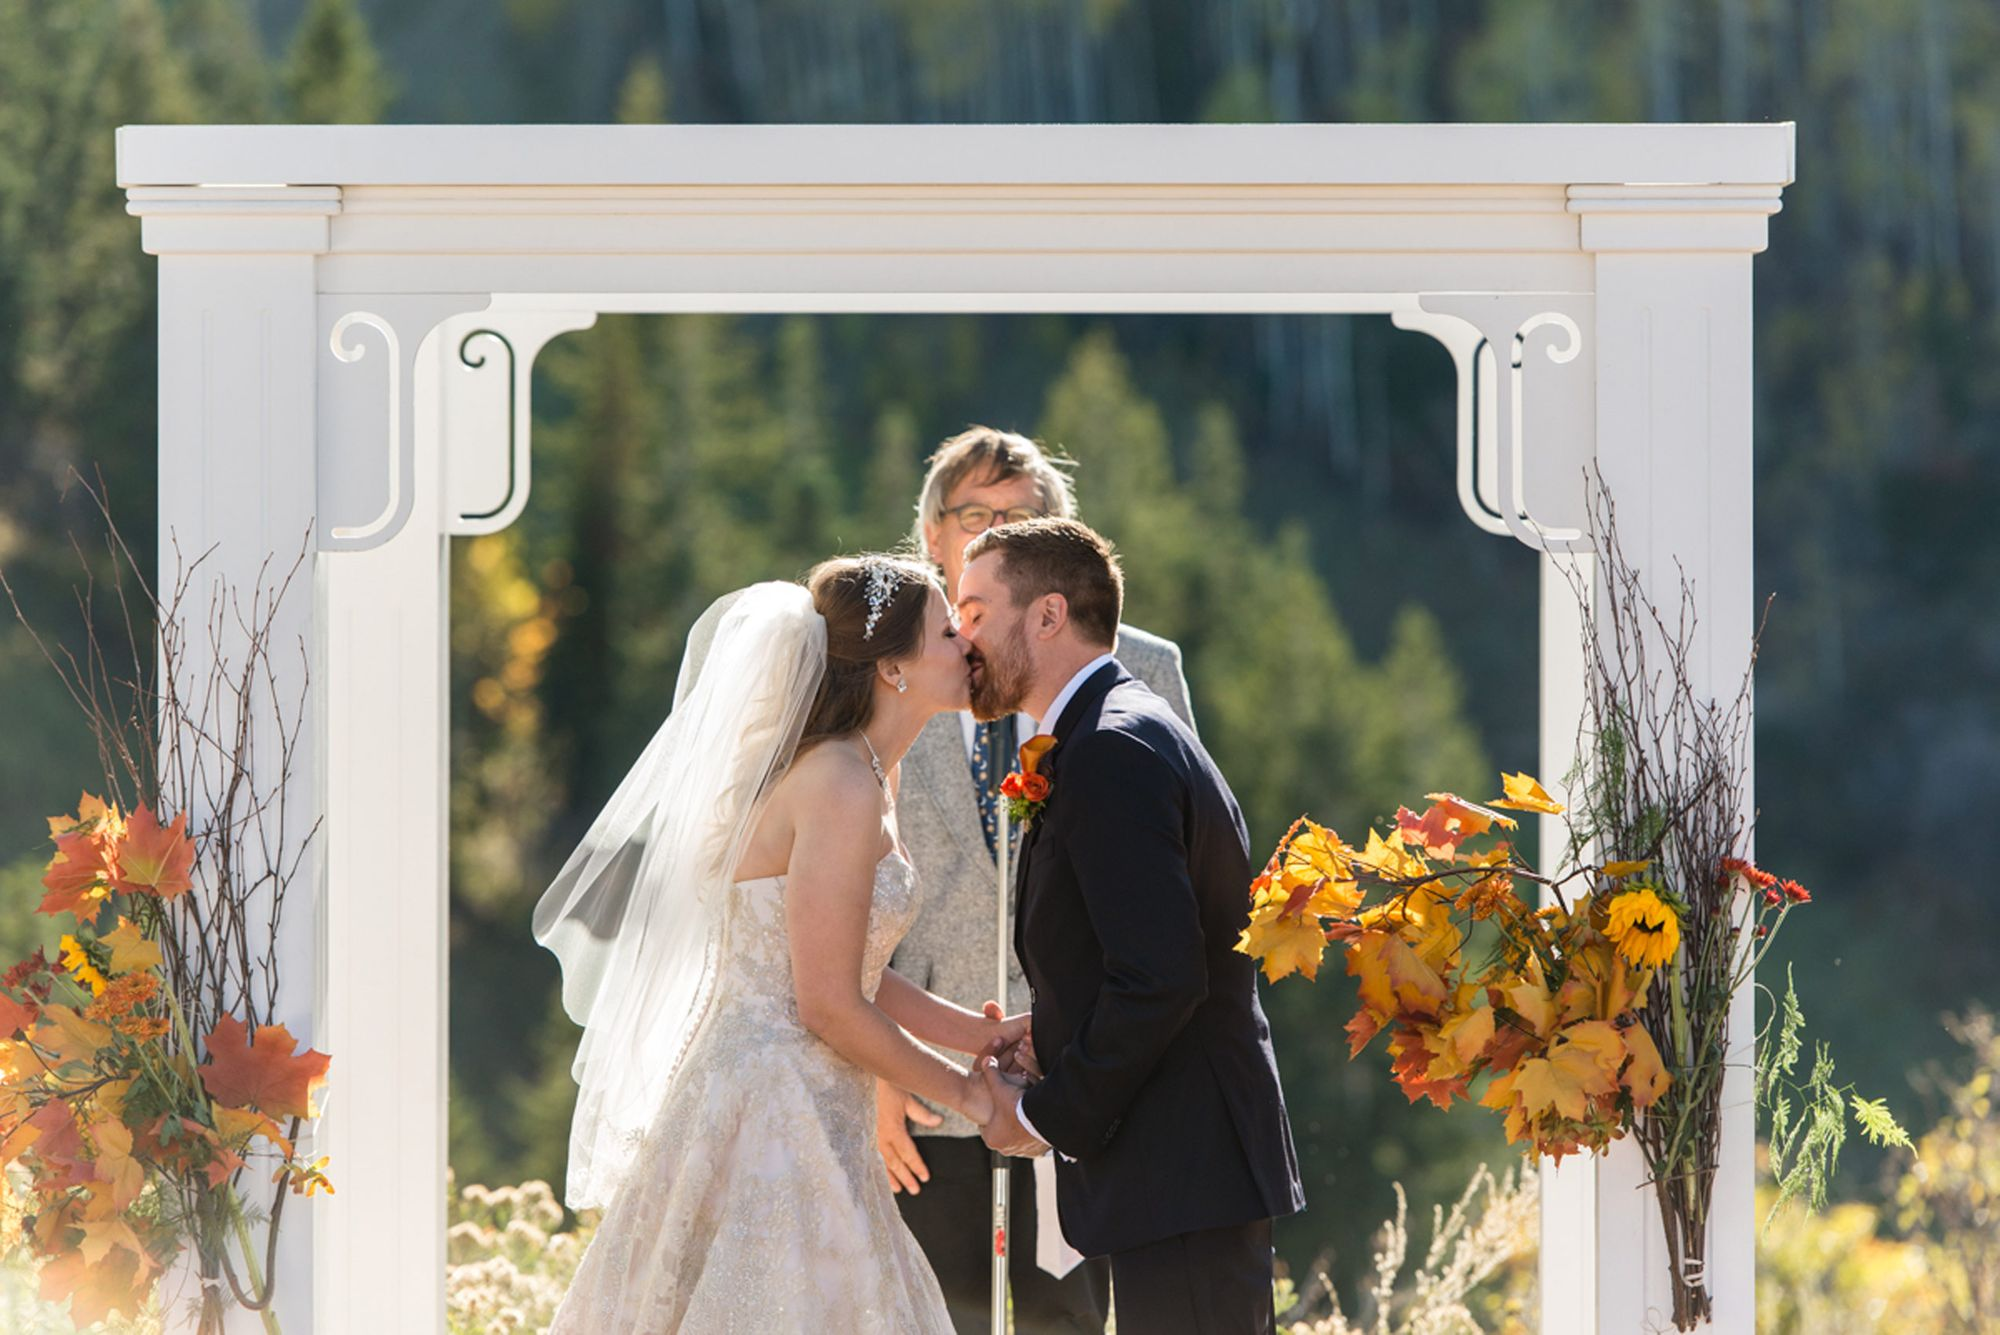 April_Matt_Park_City_Legacy_Lodge_Park_City_Utah_You_May_Kiss_the_Bride.jpg